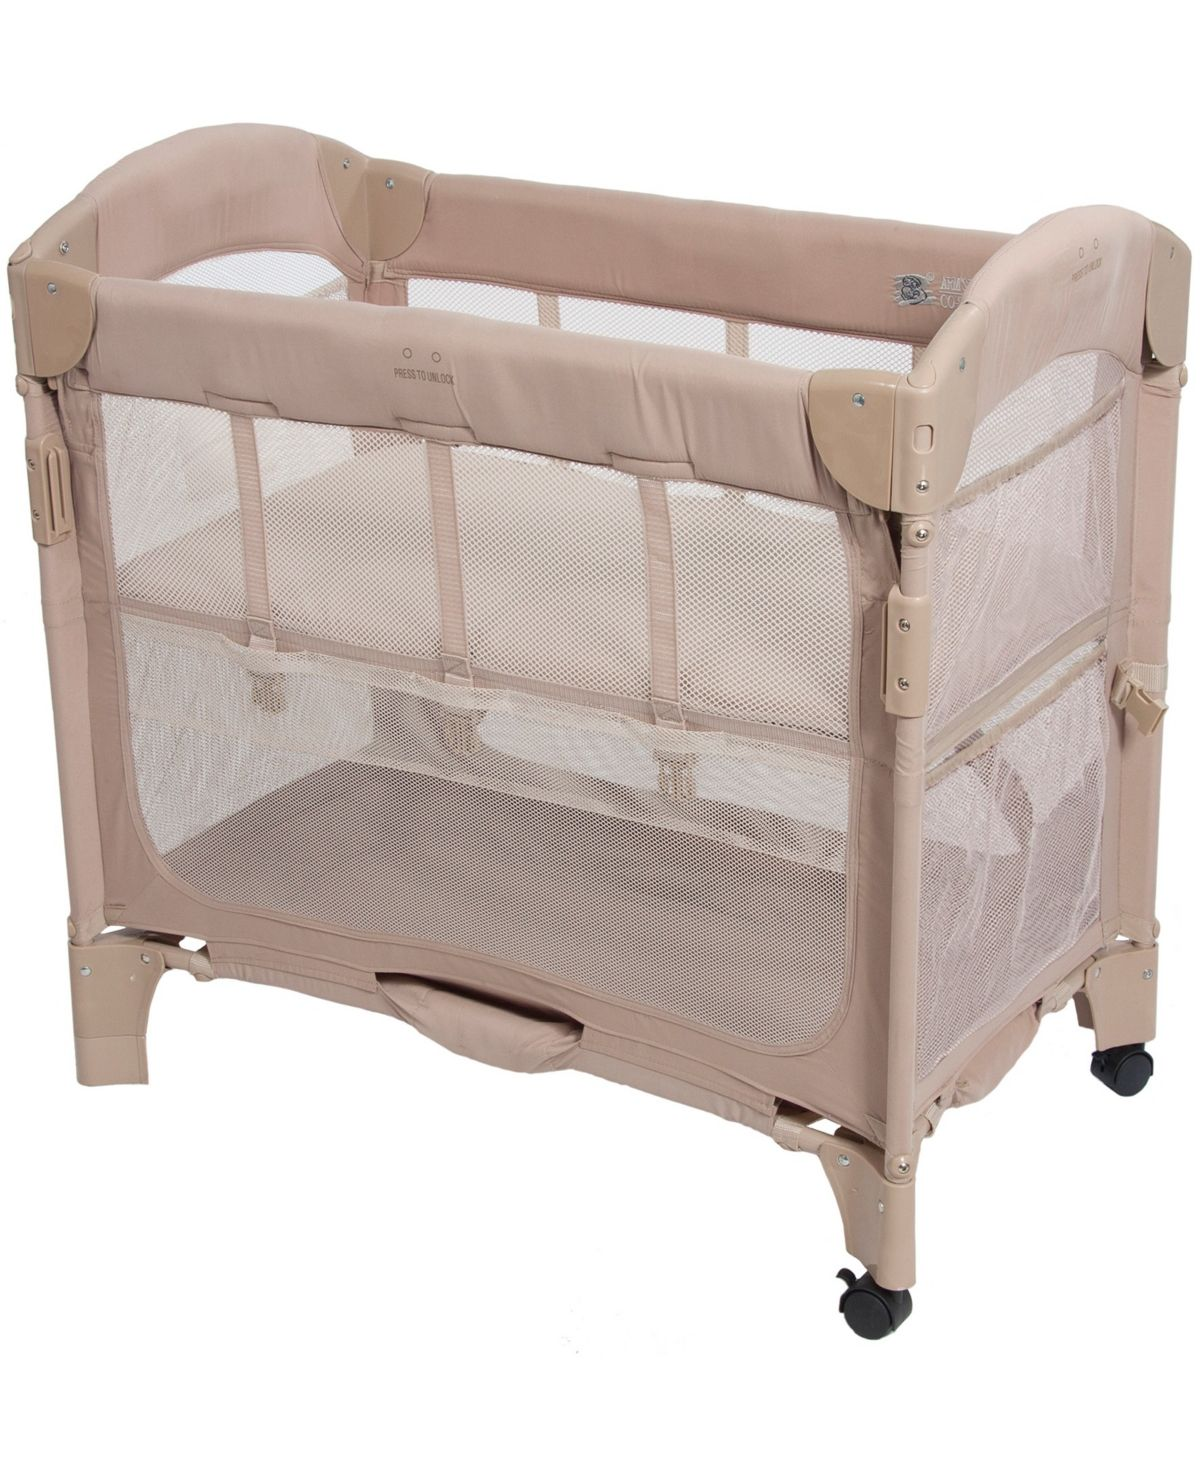 Arm S Reach Mini Ezee 2 In1 Co Sleeper Reviews Furniture